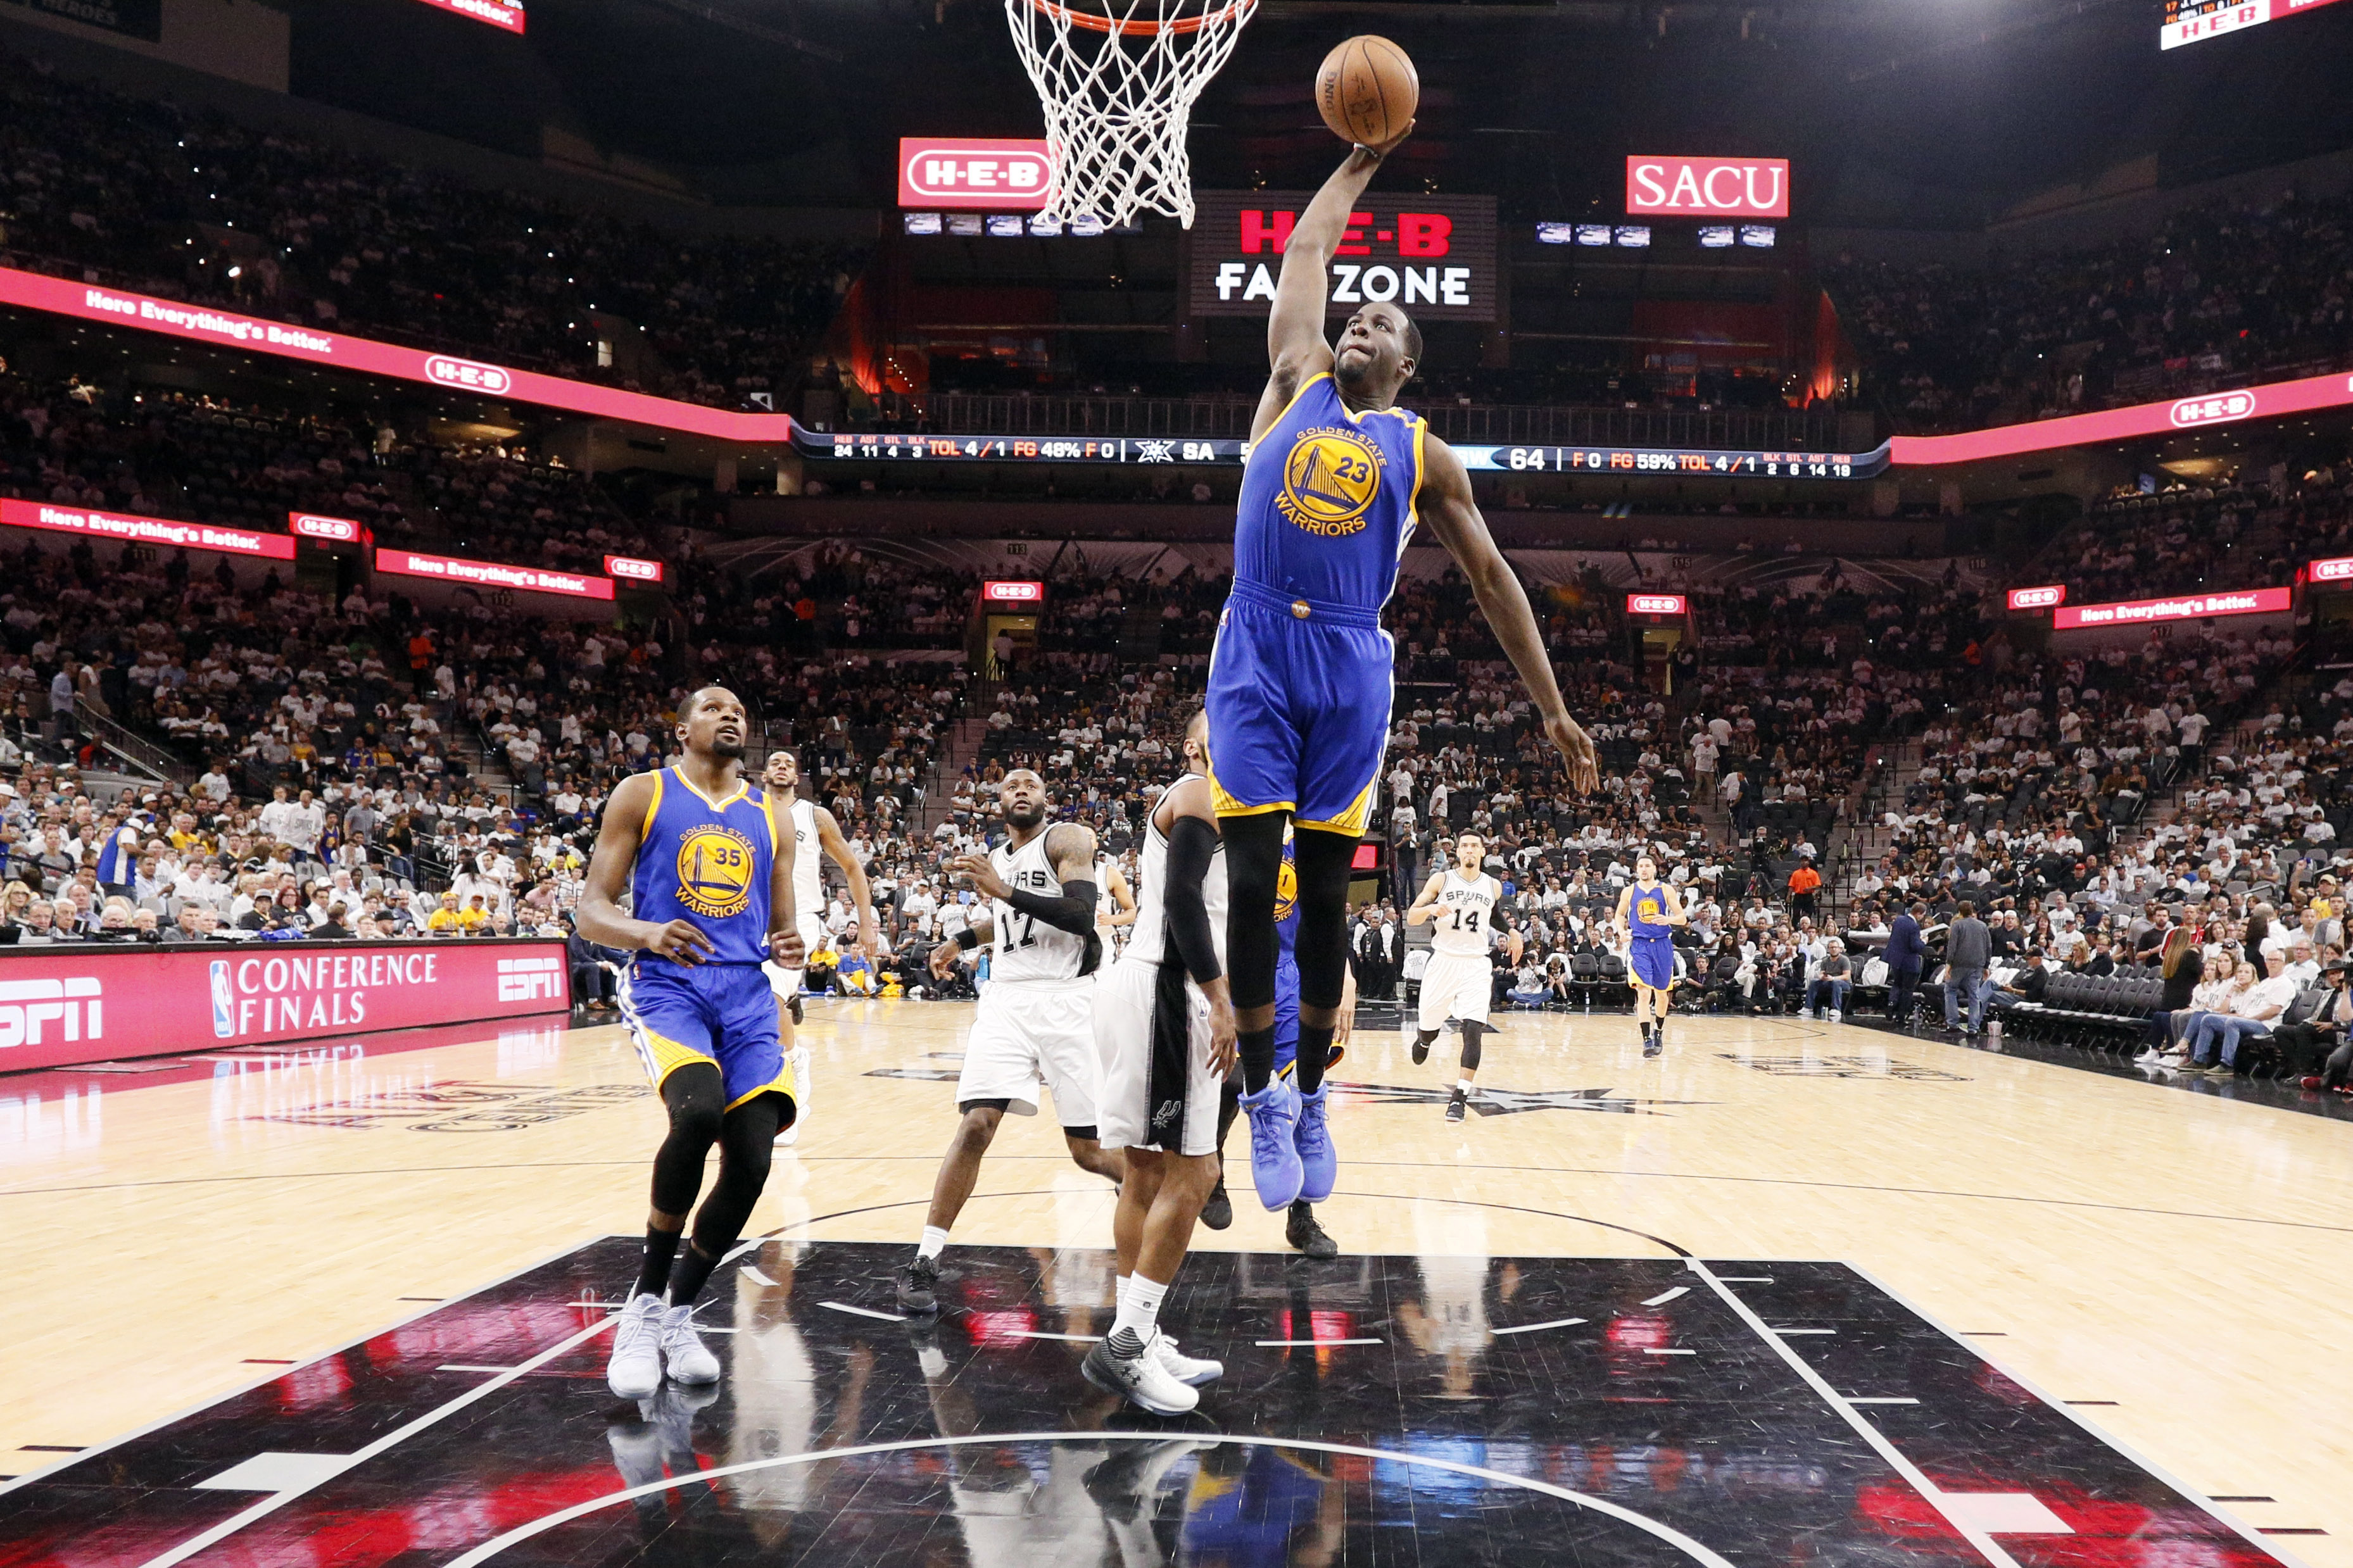 NBA Playoffs 2017: Warriors vs. Spurs Game 4 live stream ...